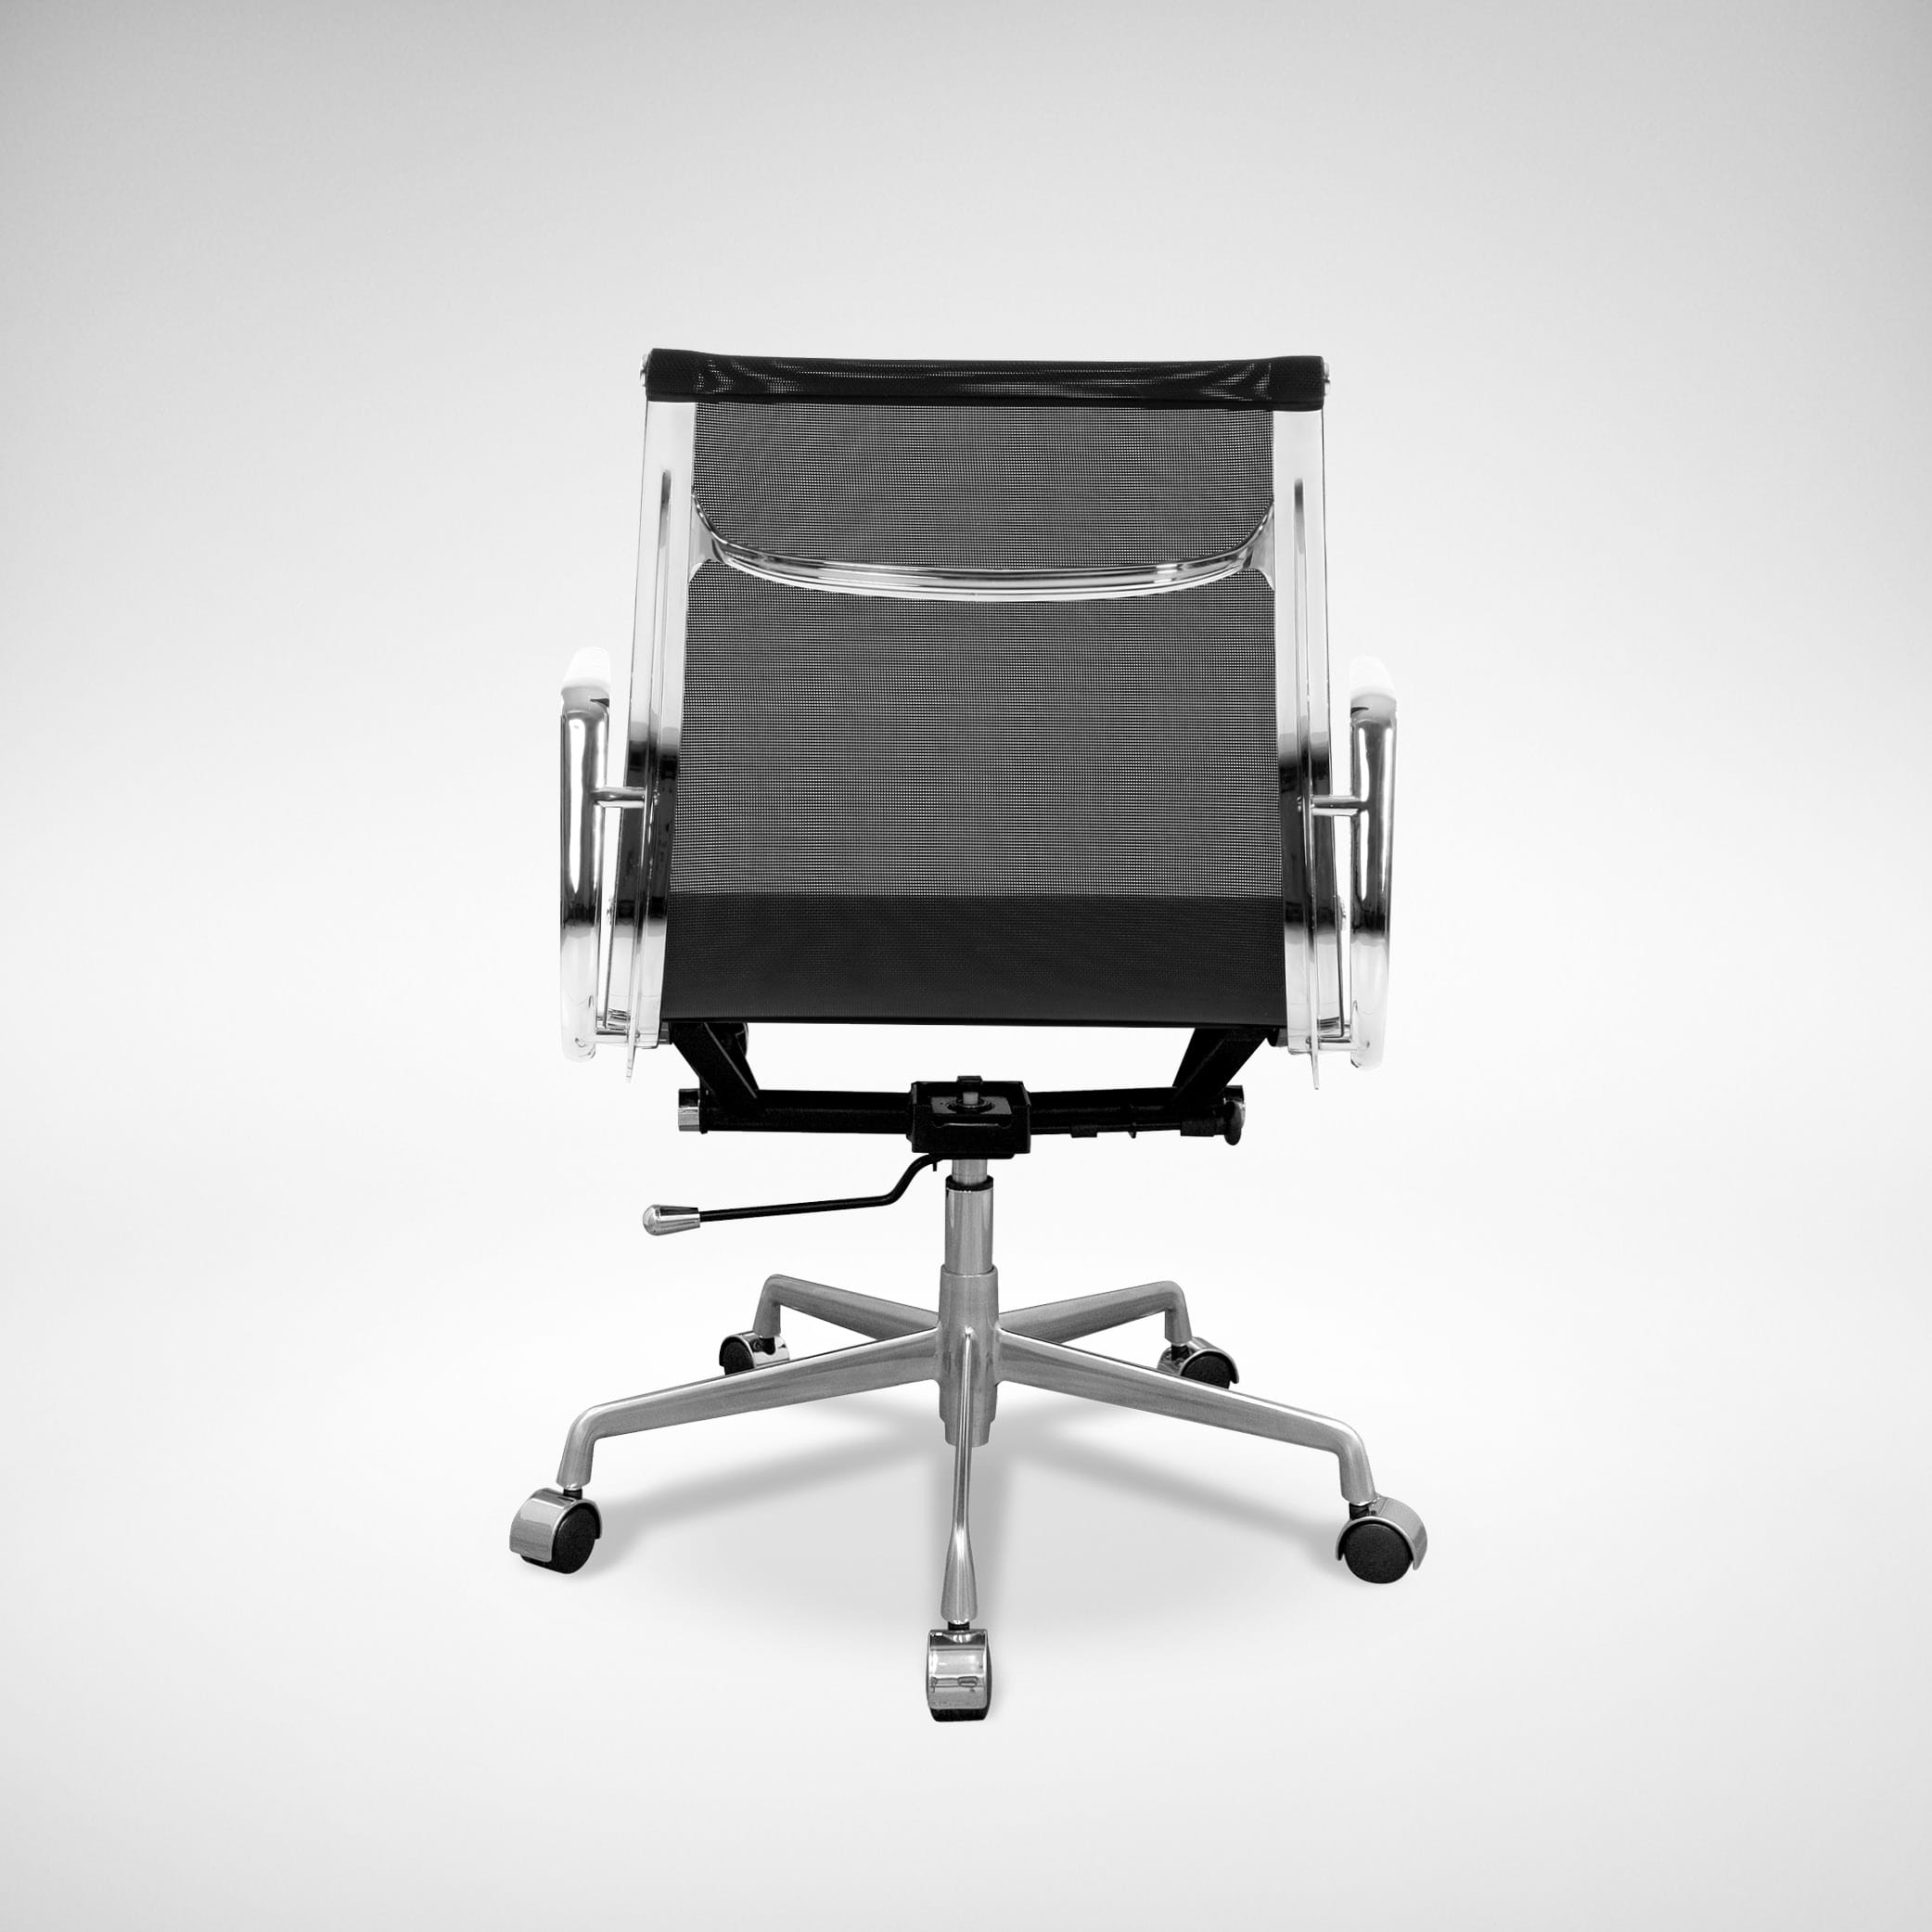 best back support for office chair singapore swivel kitchen eam mesh midback comfort design the